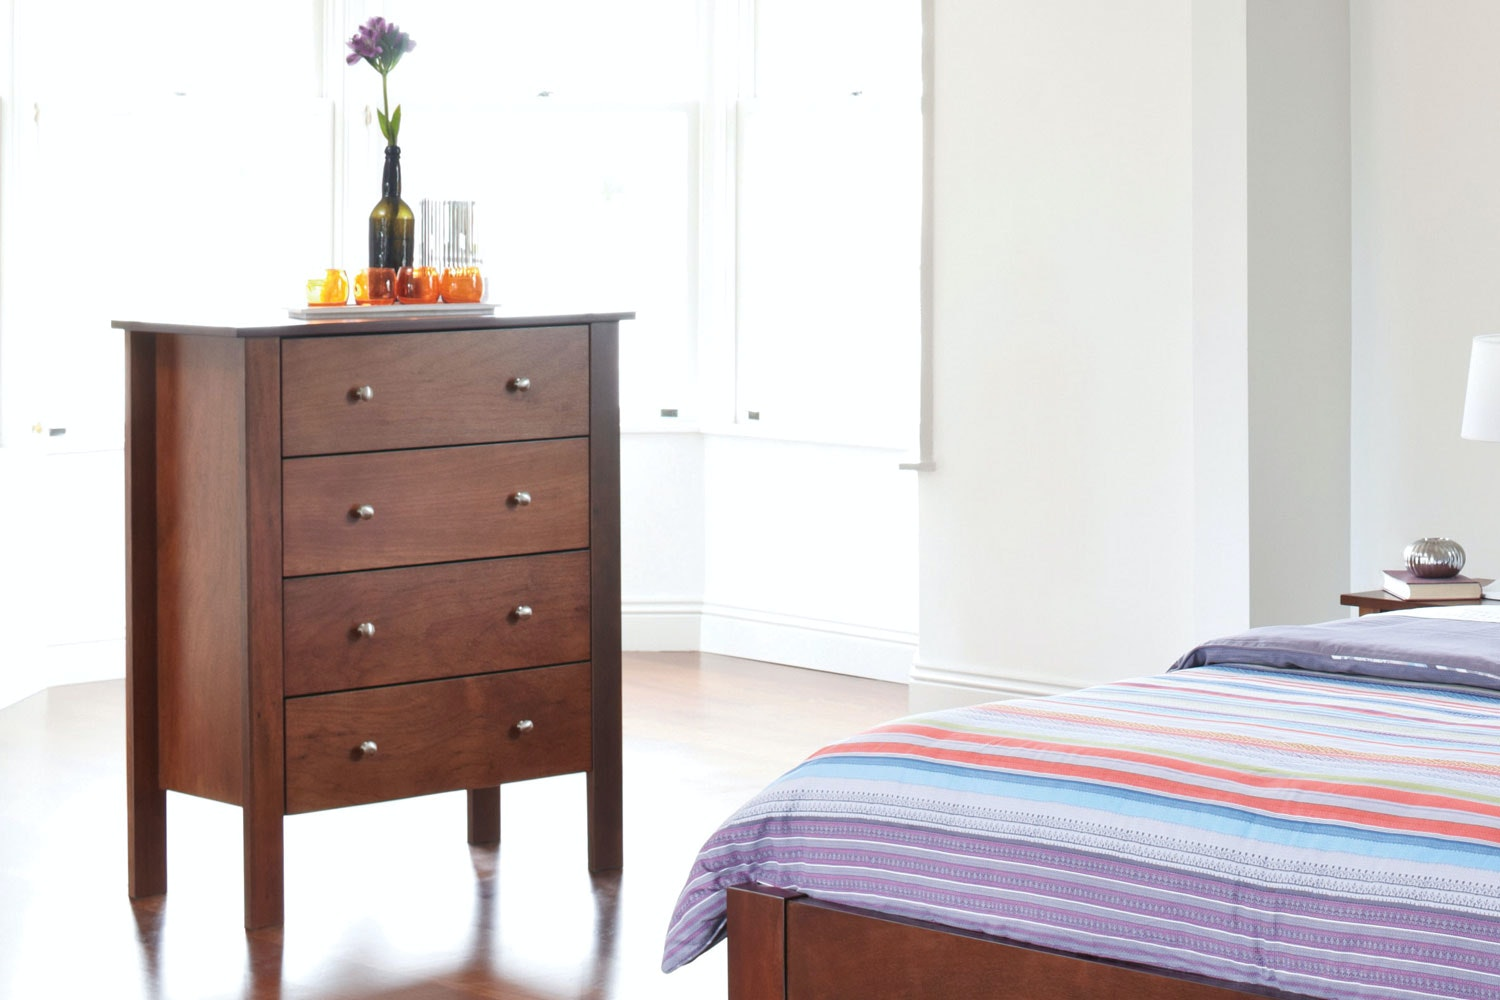 Accor Chest of Drawers